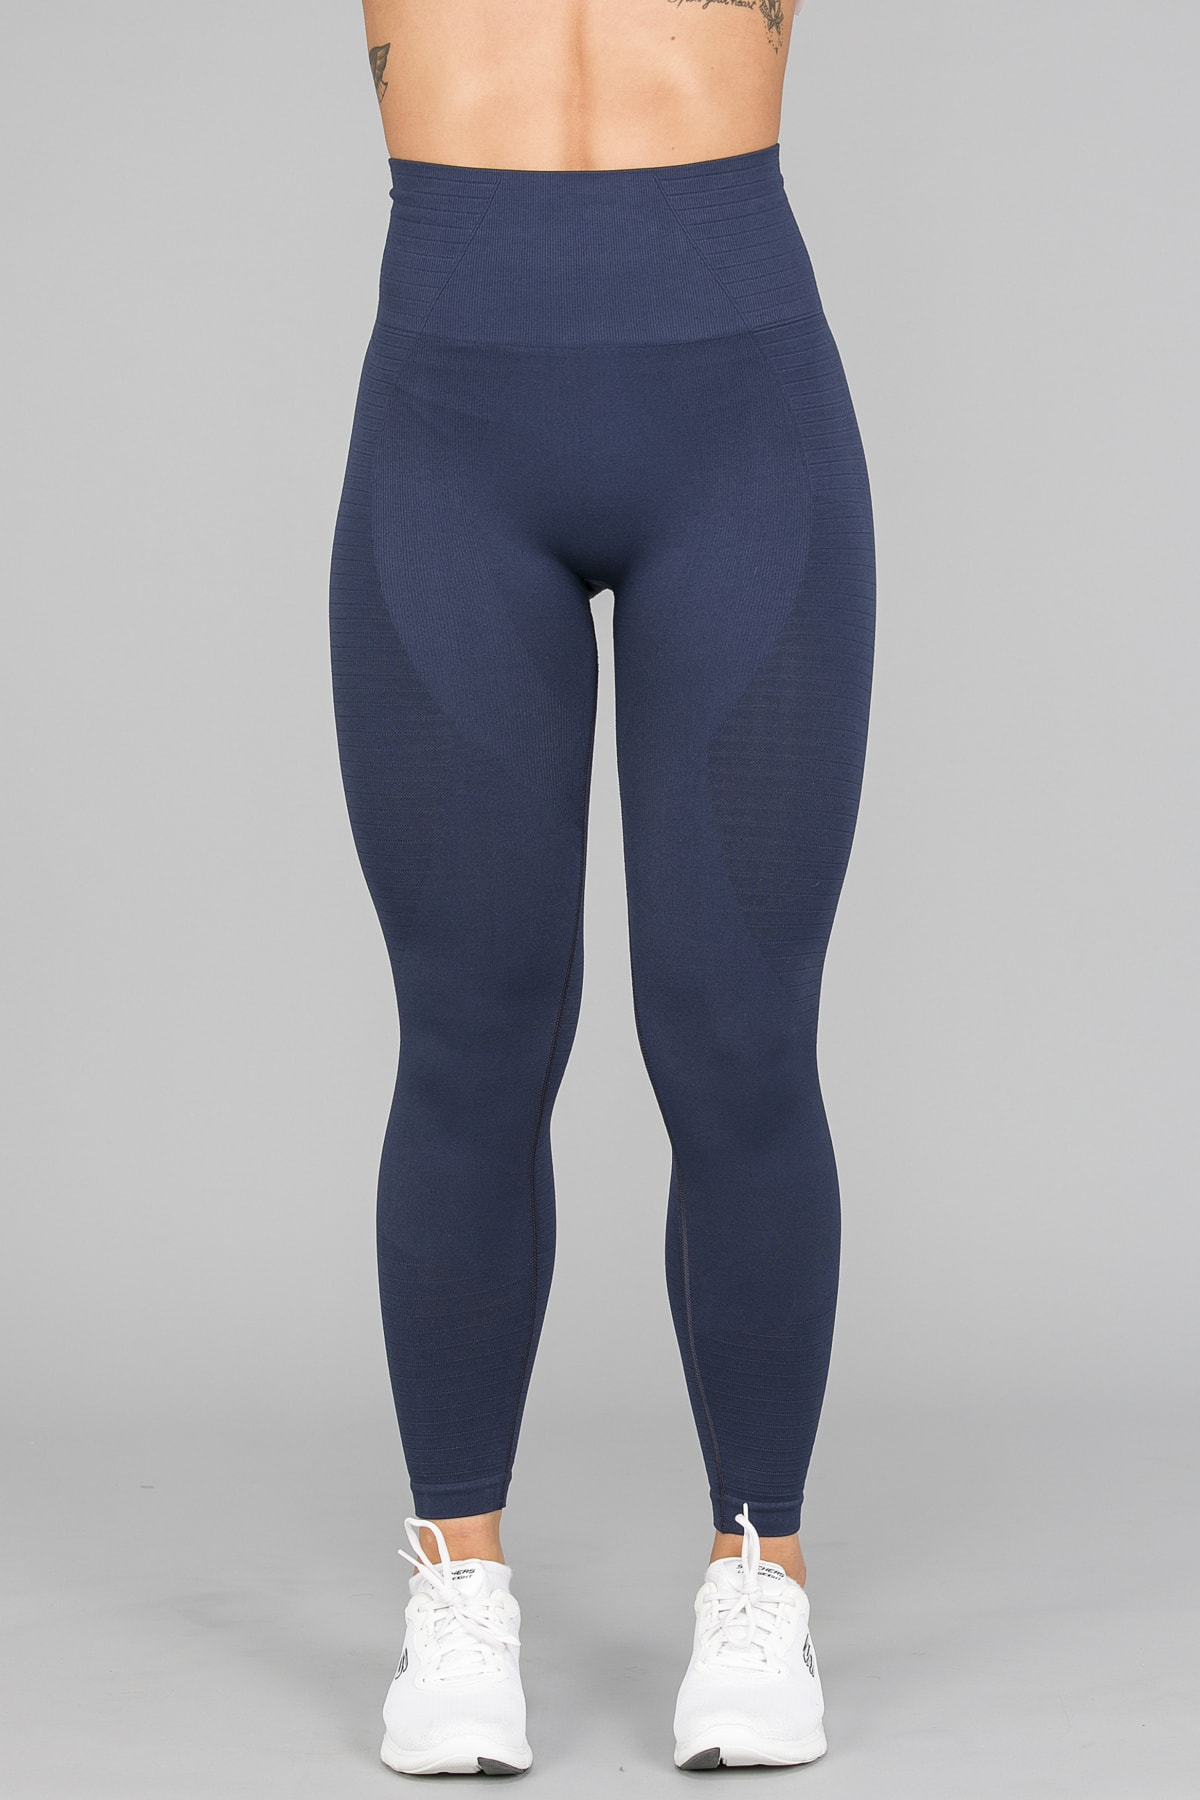 Jerf Gela 2.0 tights Navy Blue14